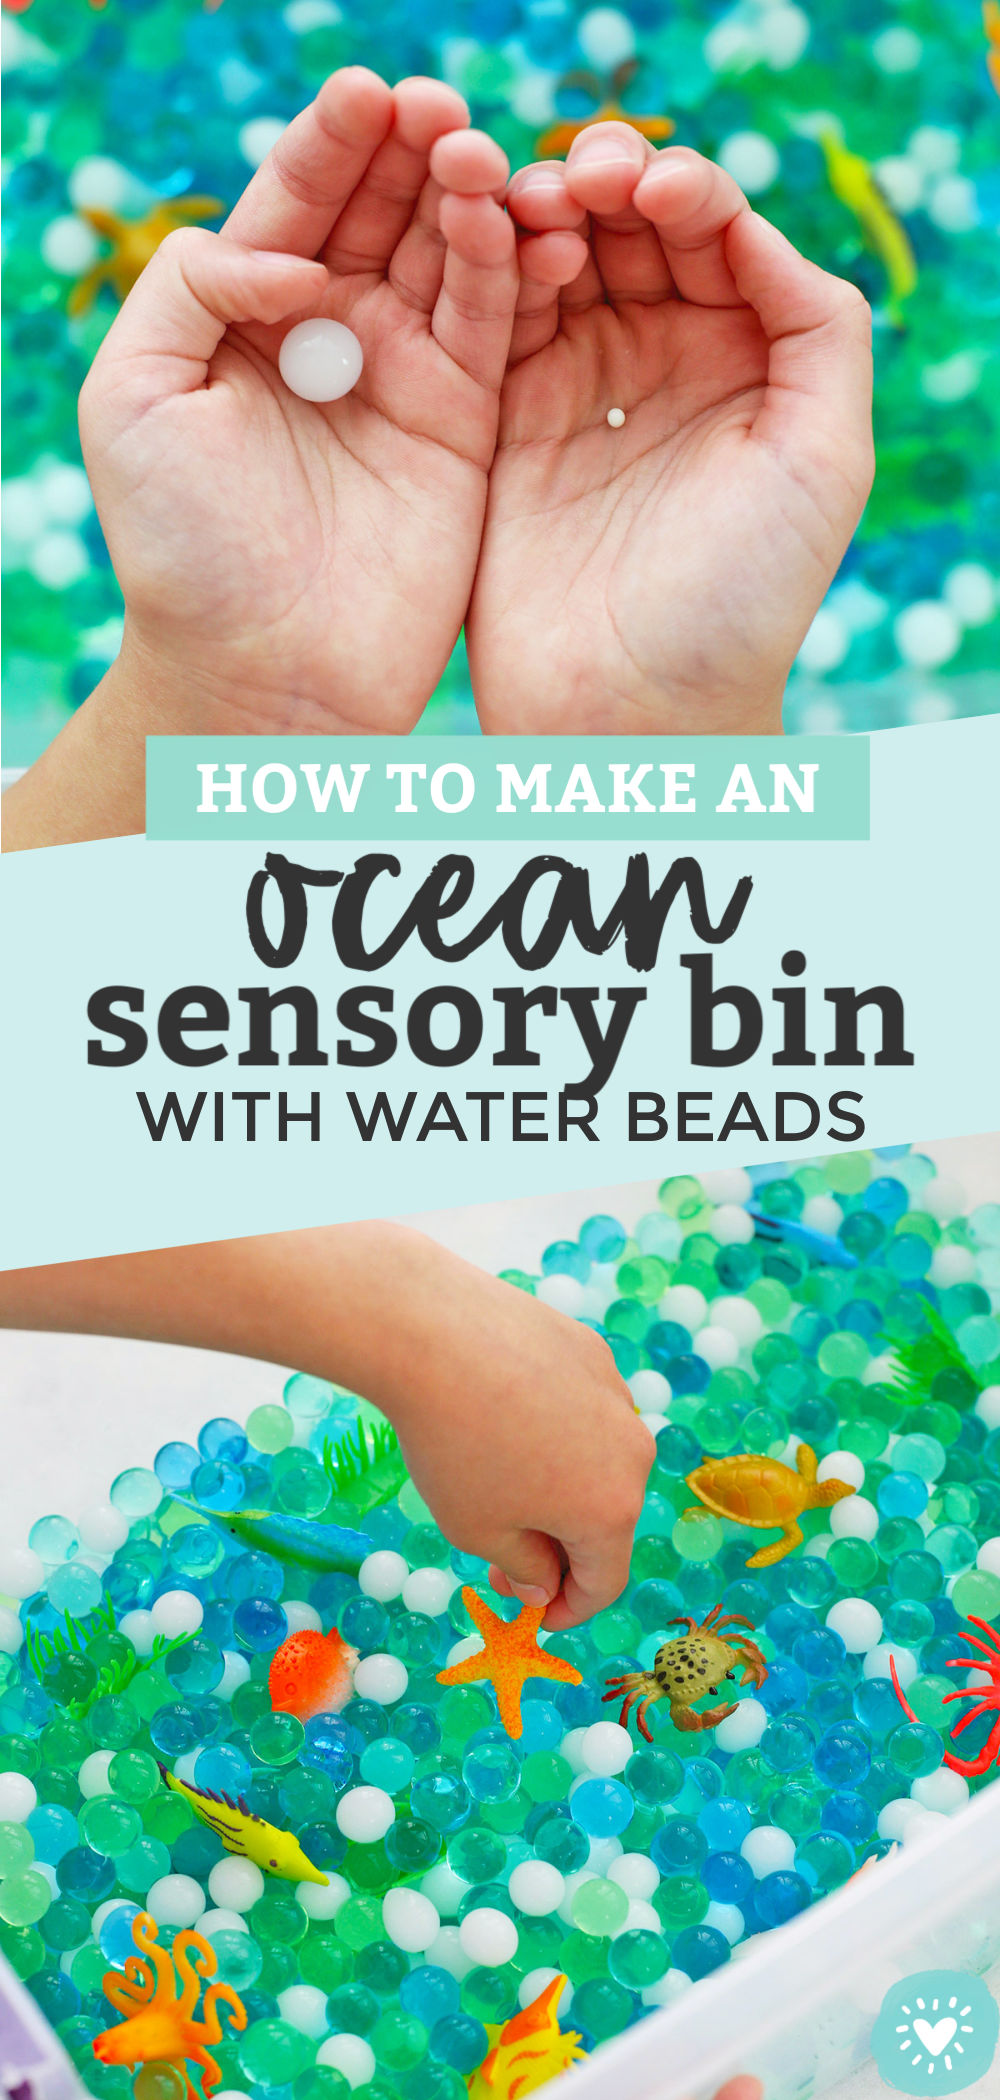 How to Make an Ocean Sensory Bin with Water Beads from One Lovely Life